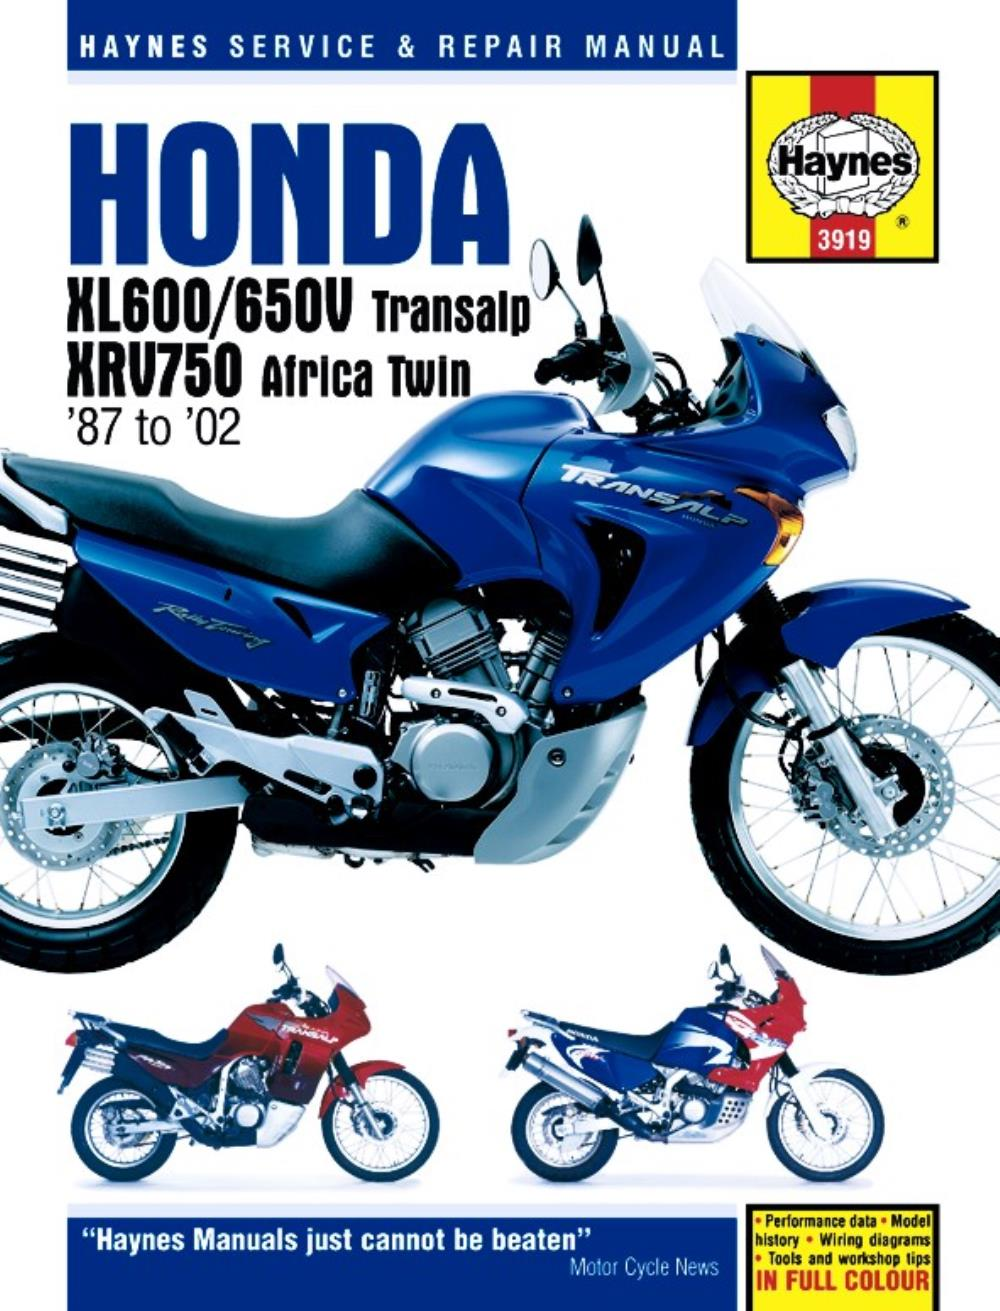 medium resolution of manual haynes for 1994 honda xrv 750 r africa twin rd07 ebay honda motorcycle headlight wiring diagram honda 750r wiring diagram